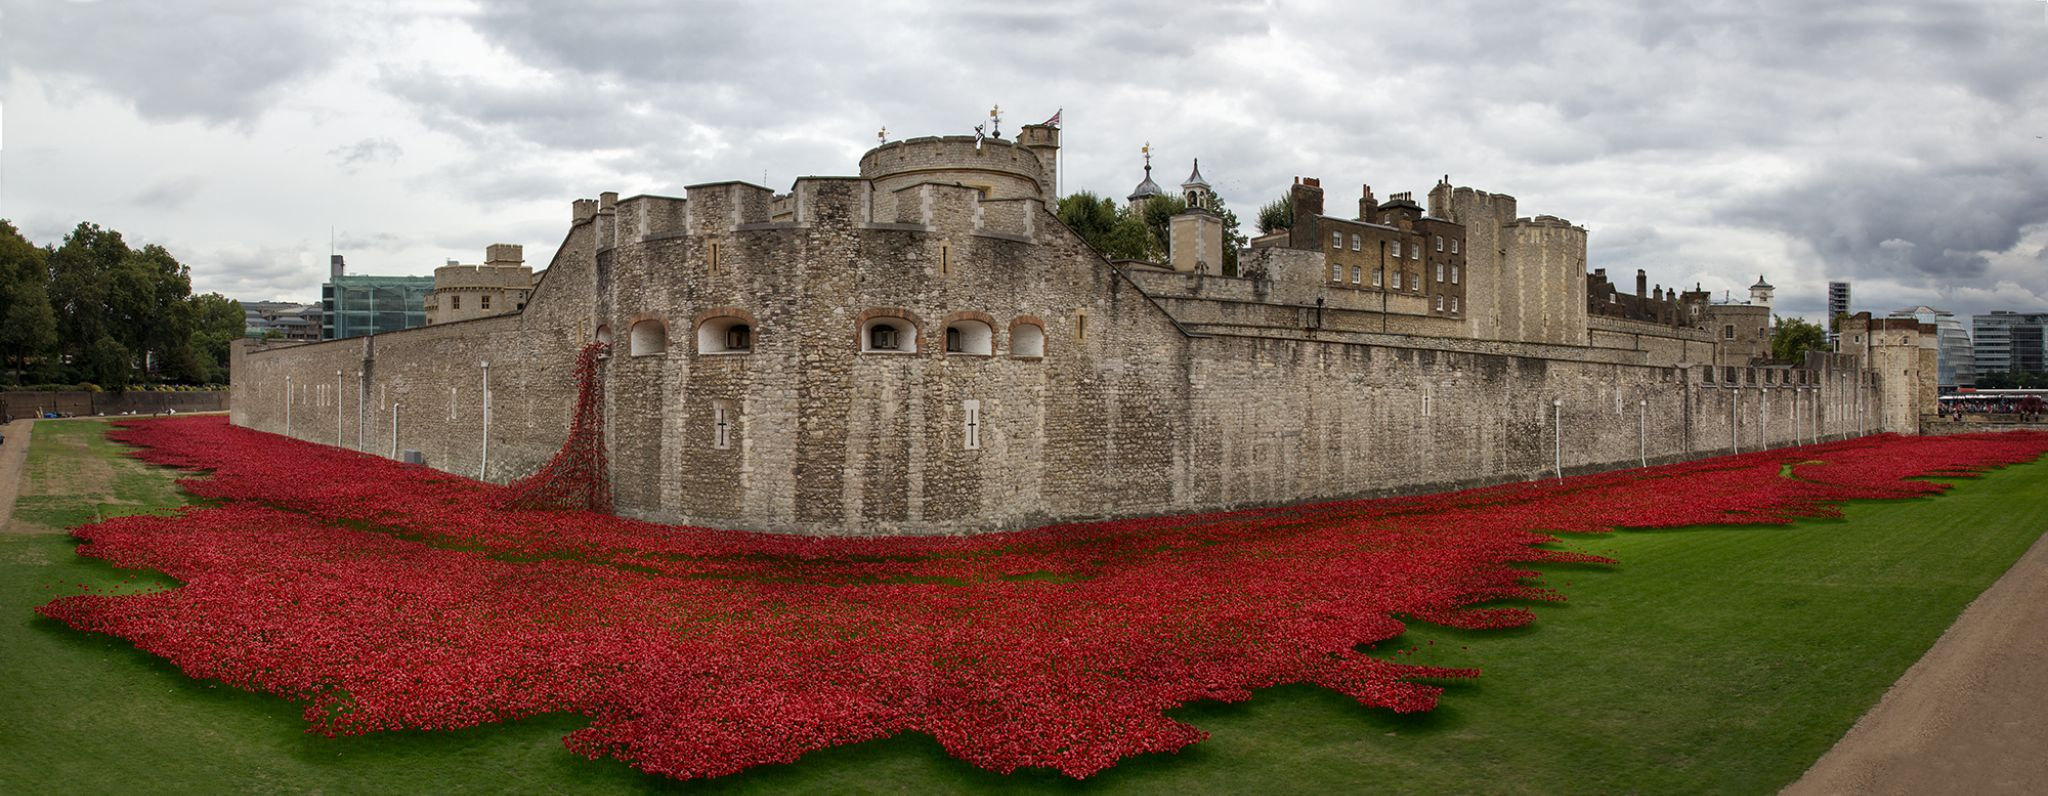 Tower Poppies by nngphoto